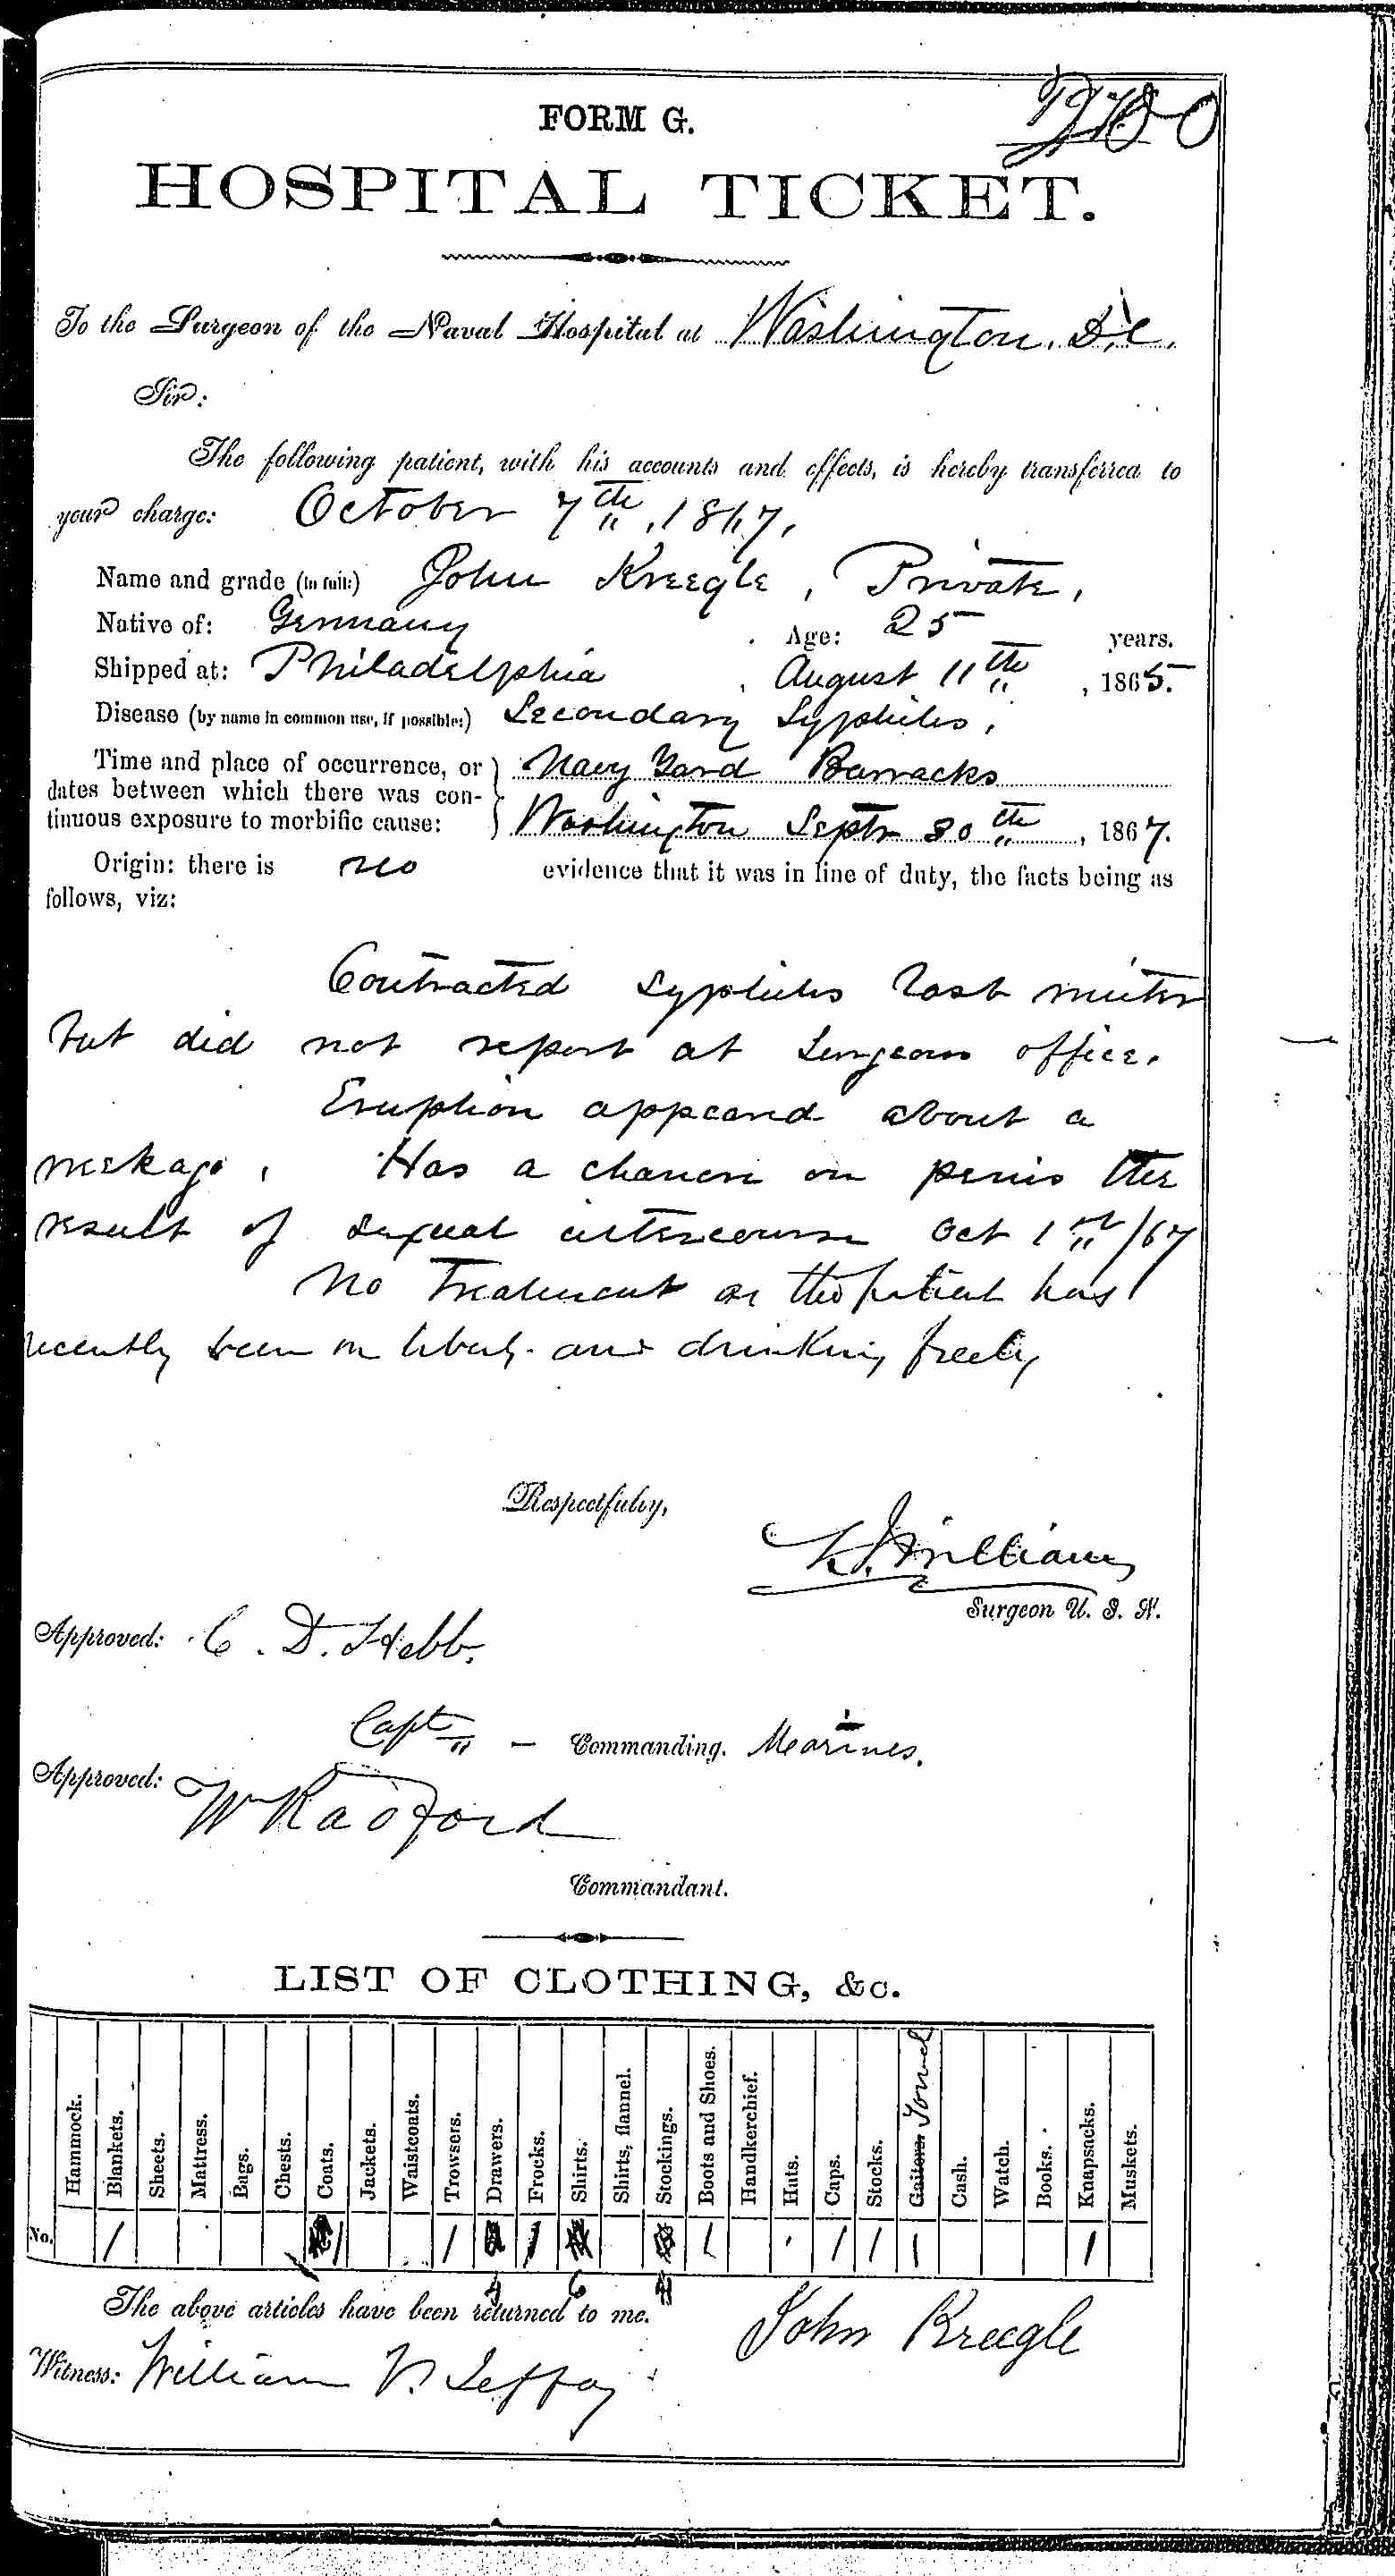 Entry for John Kreegle (page 1 of 2) in the log Hospital Tickets and Case Papers - Naval Hospital - Washington, D.C. - 1866-68